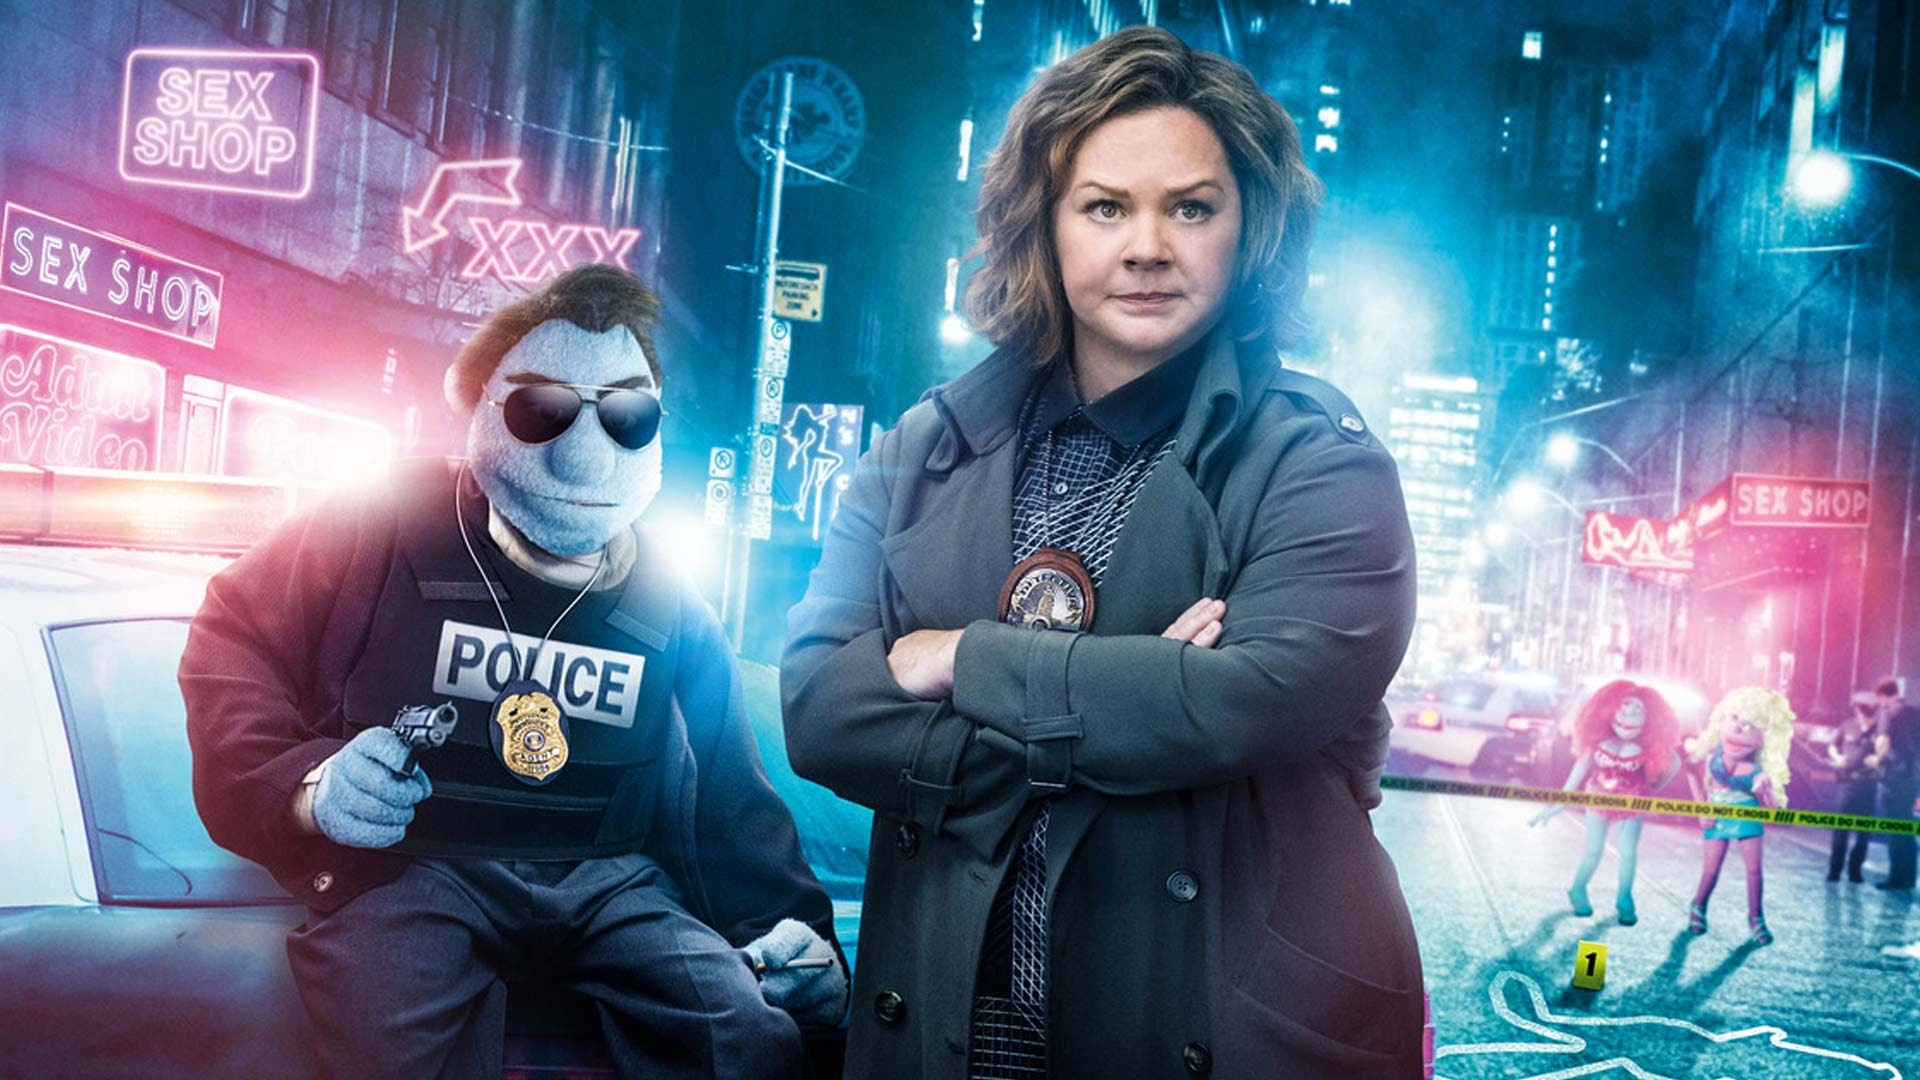 Melissa McCarthy stars in 'The Happytime Murders' as Detective Connie Edwards alongside a puppet protagonist.